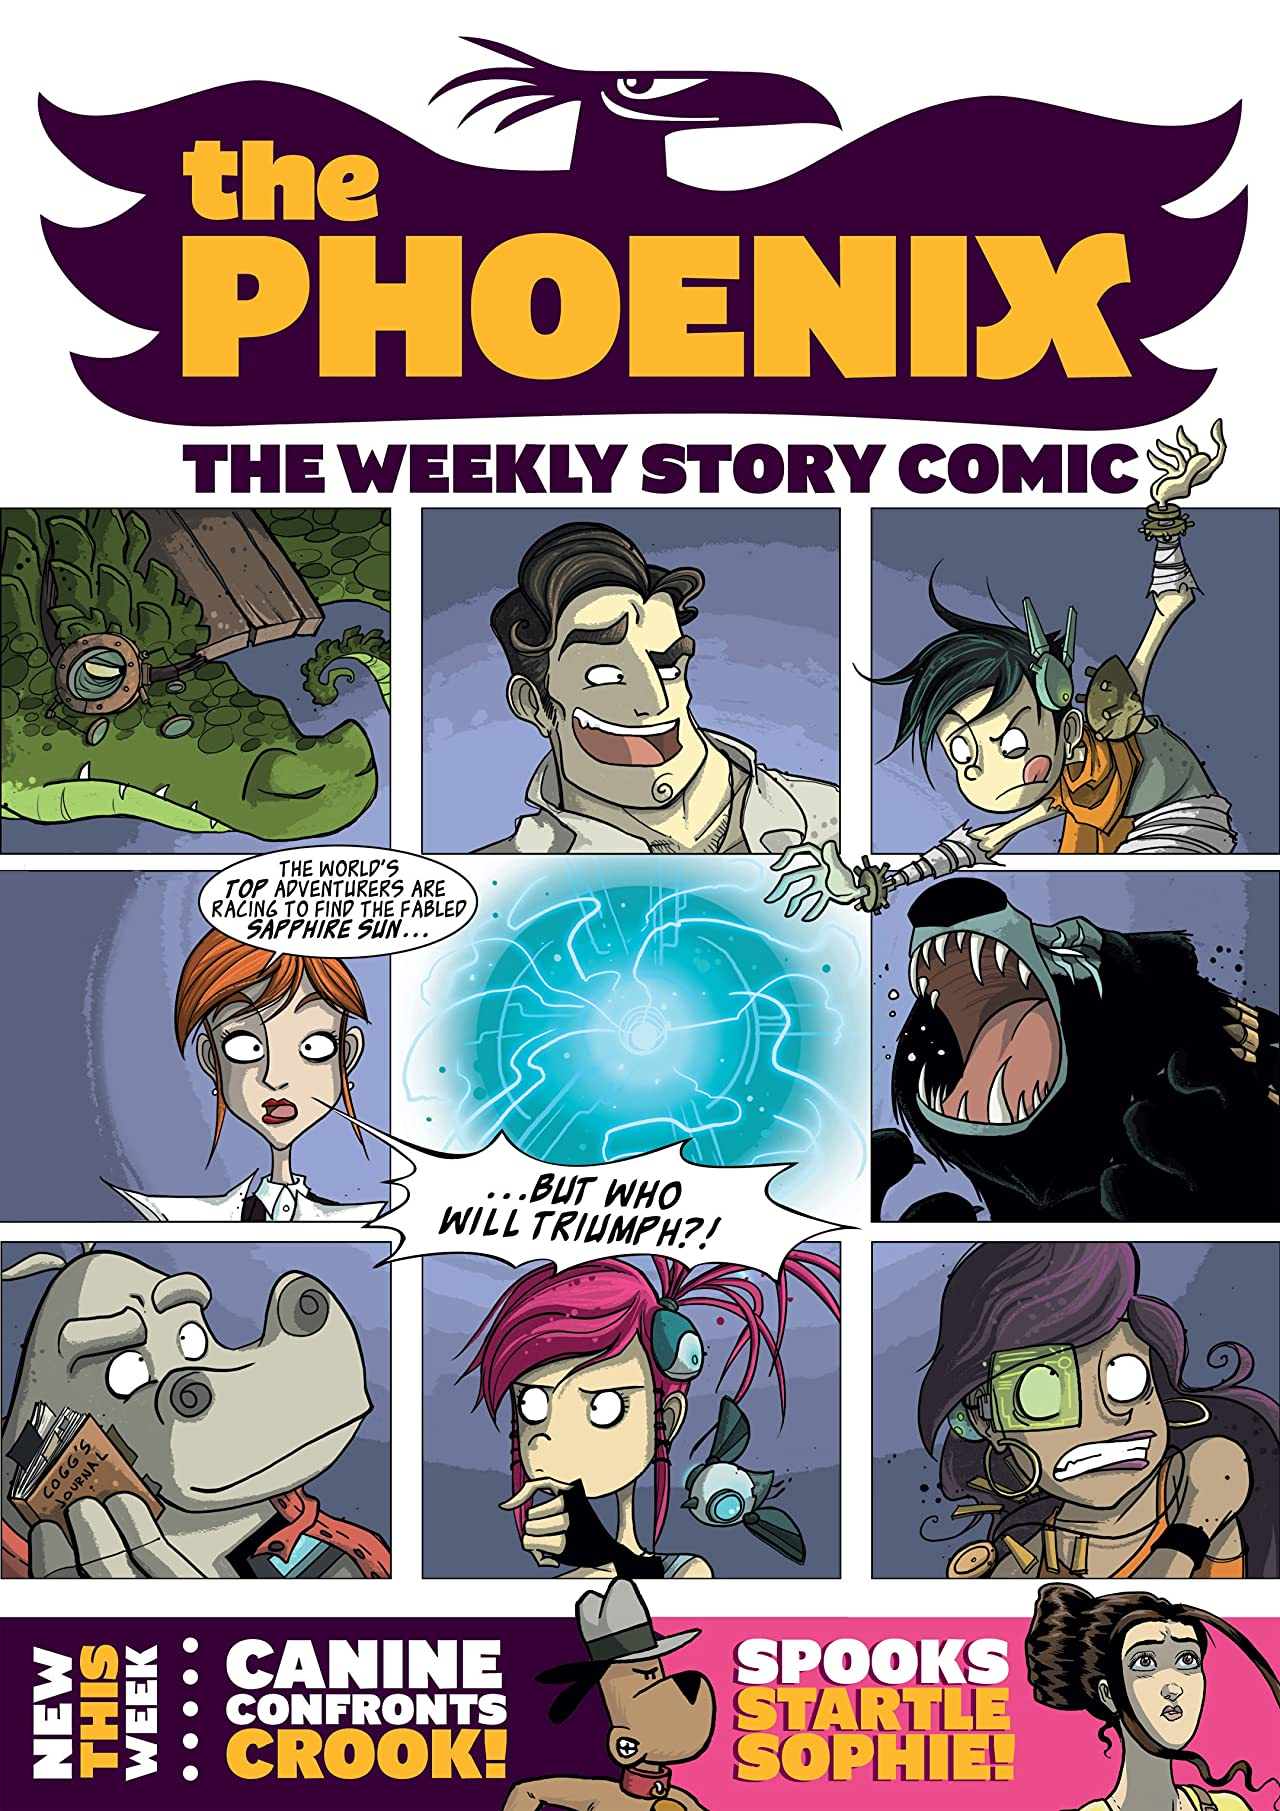 The Phoenix #35: The Weekly Story Comic